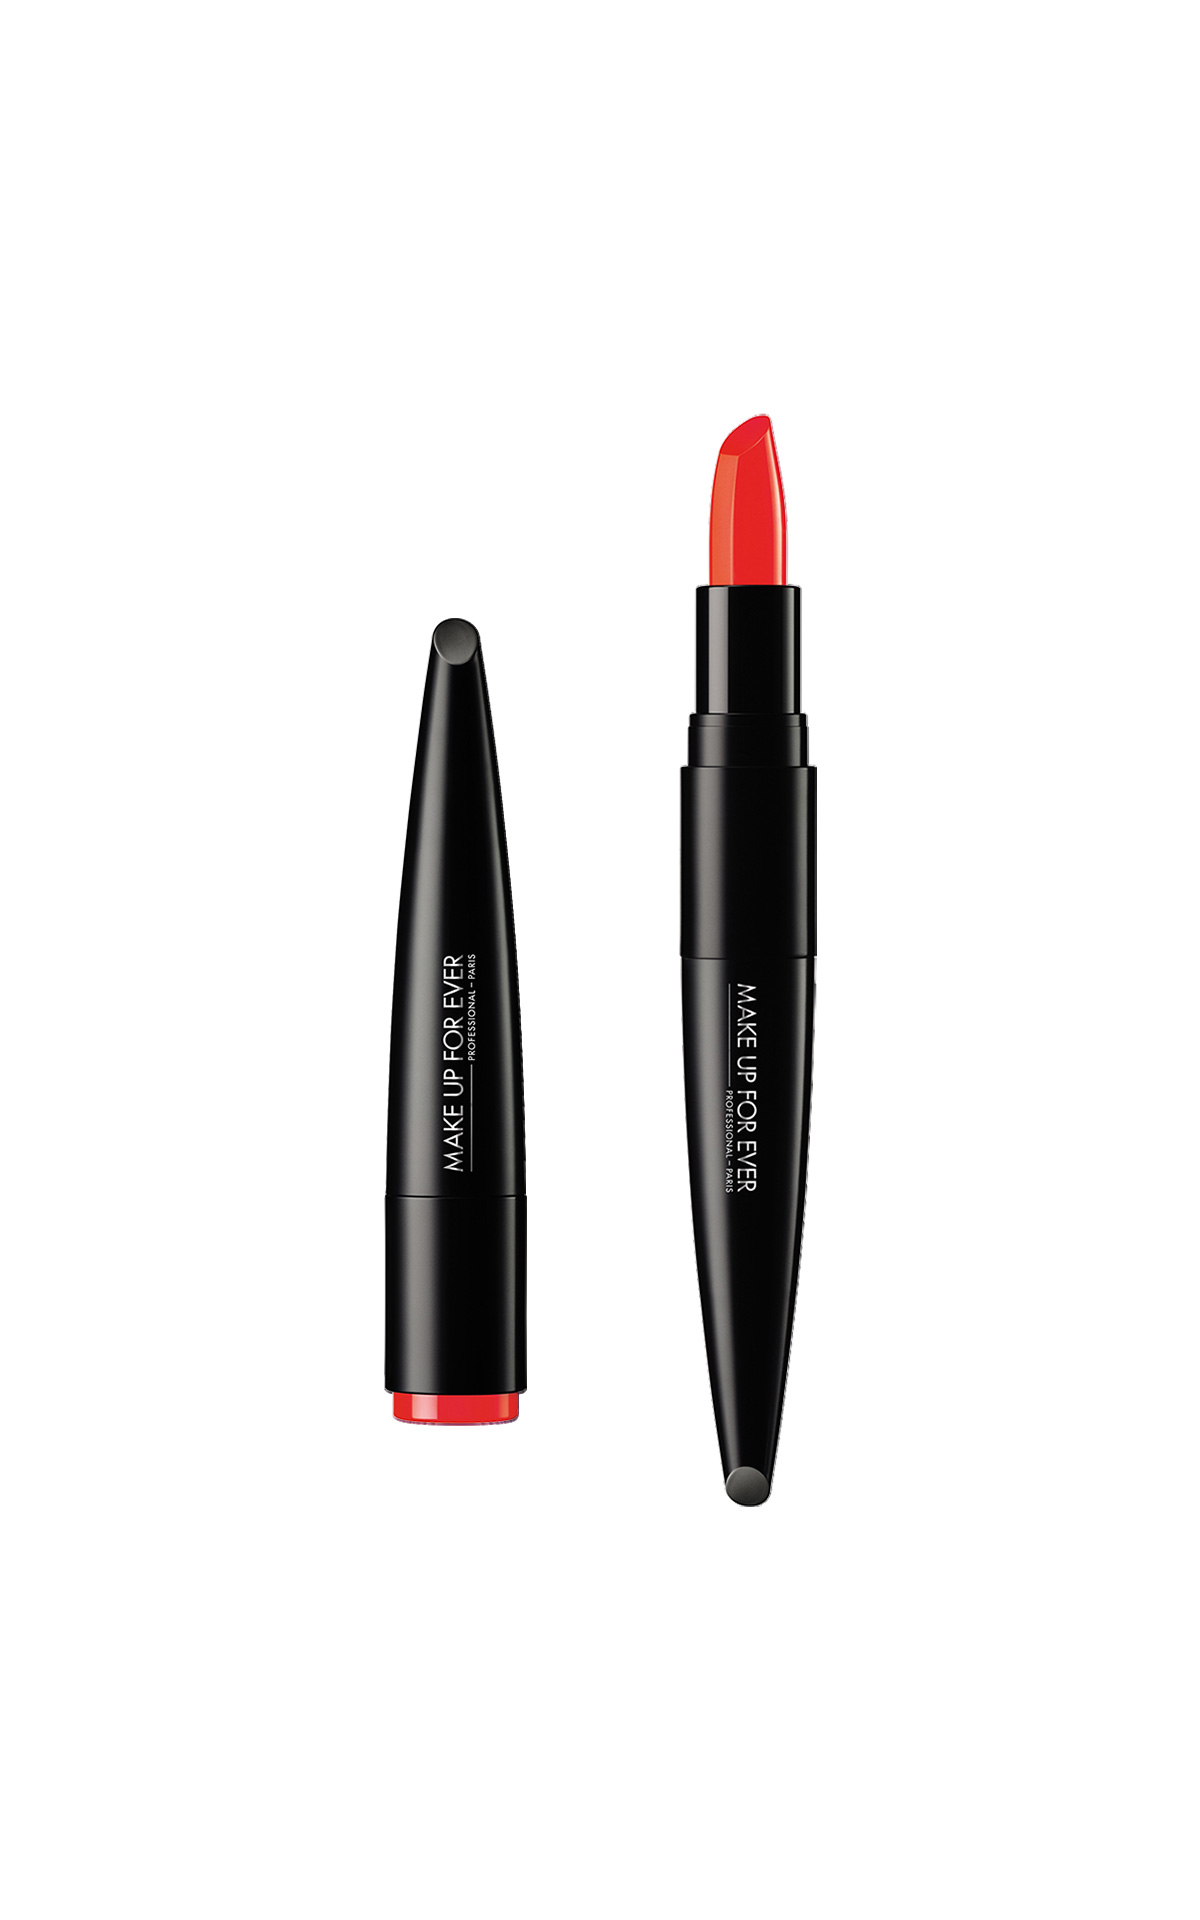 Make Up For Ever Rouge Artist lipstick 314